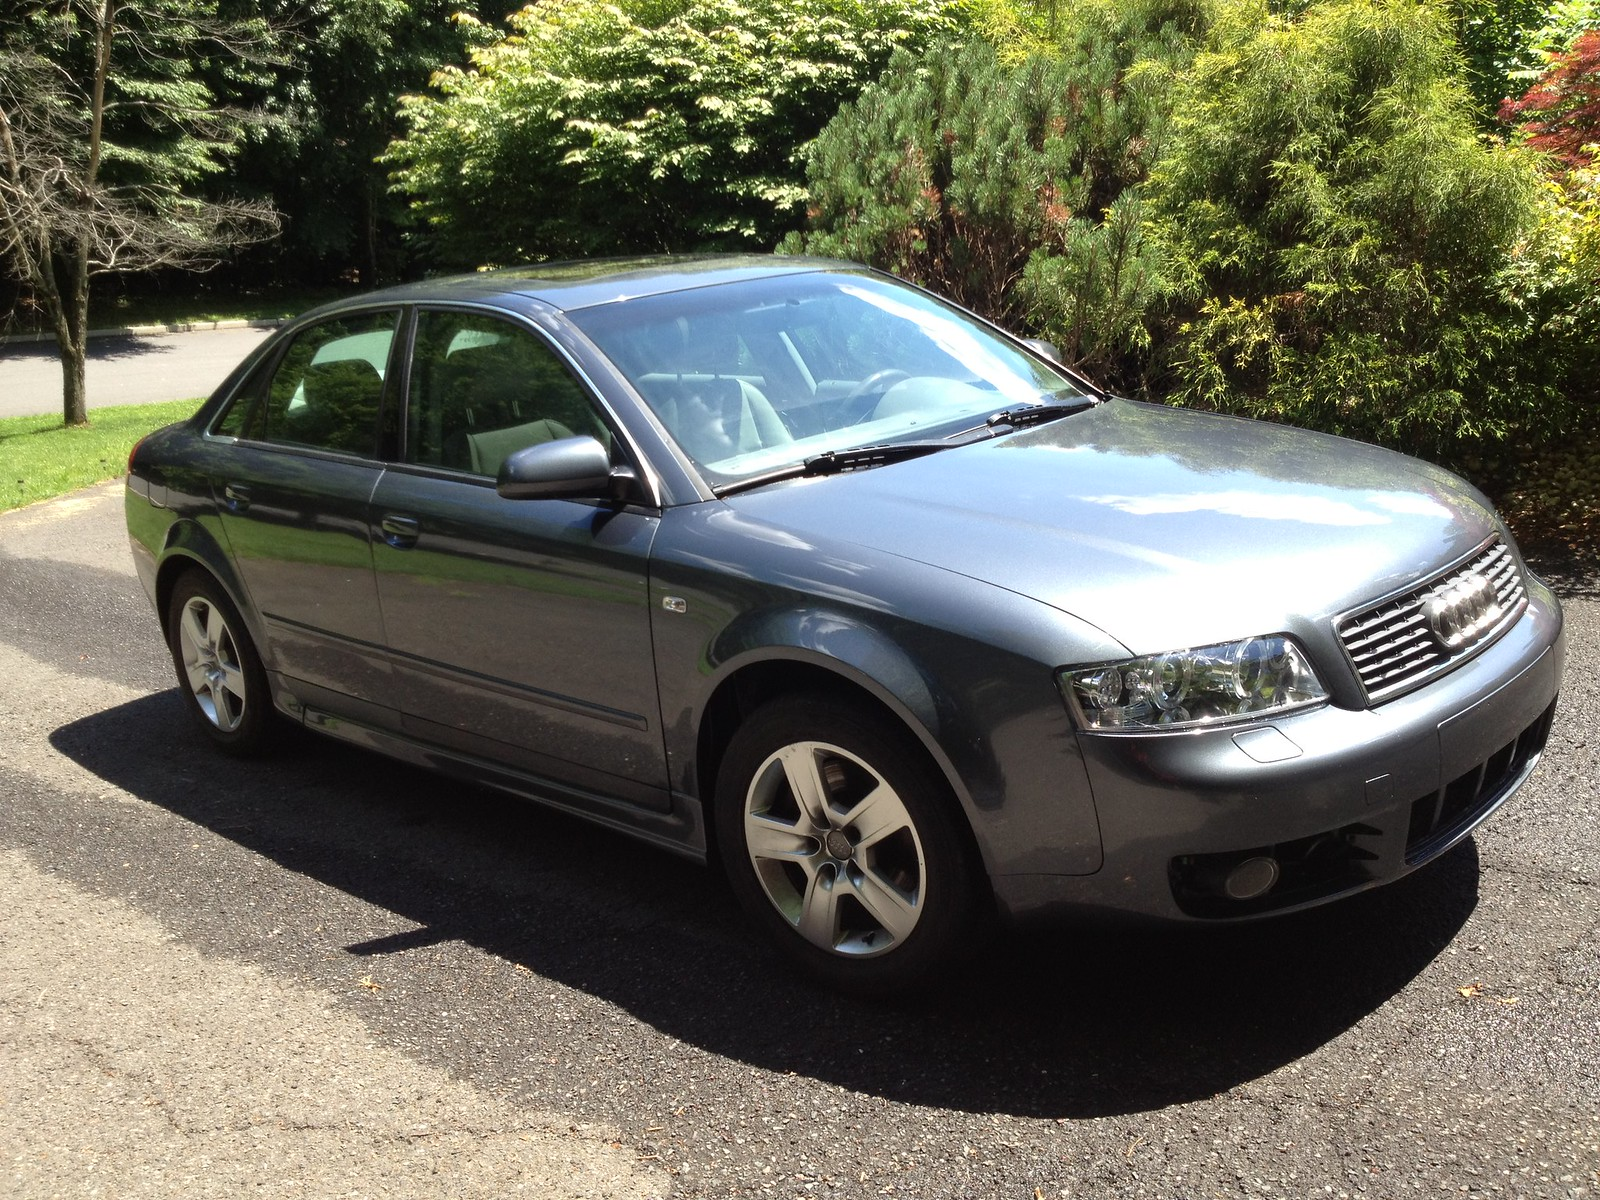 Audi b6 a4x swapin turbo a week later during a test drive the trans blewhad no idea really how or why it happened but it did so i pulled the motor and trans and sold it on sciox Gallery